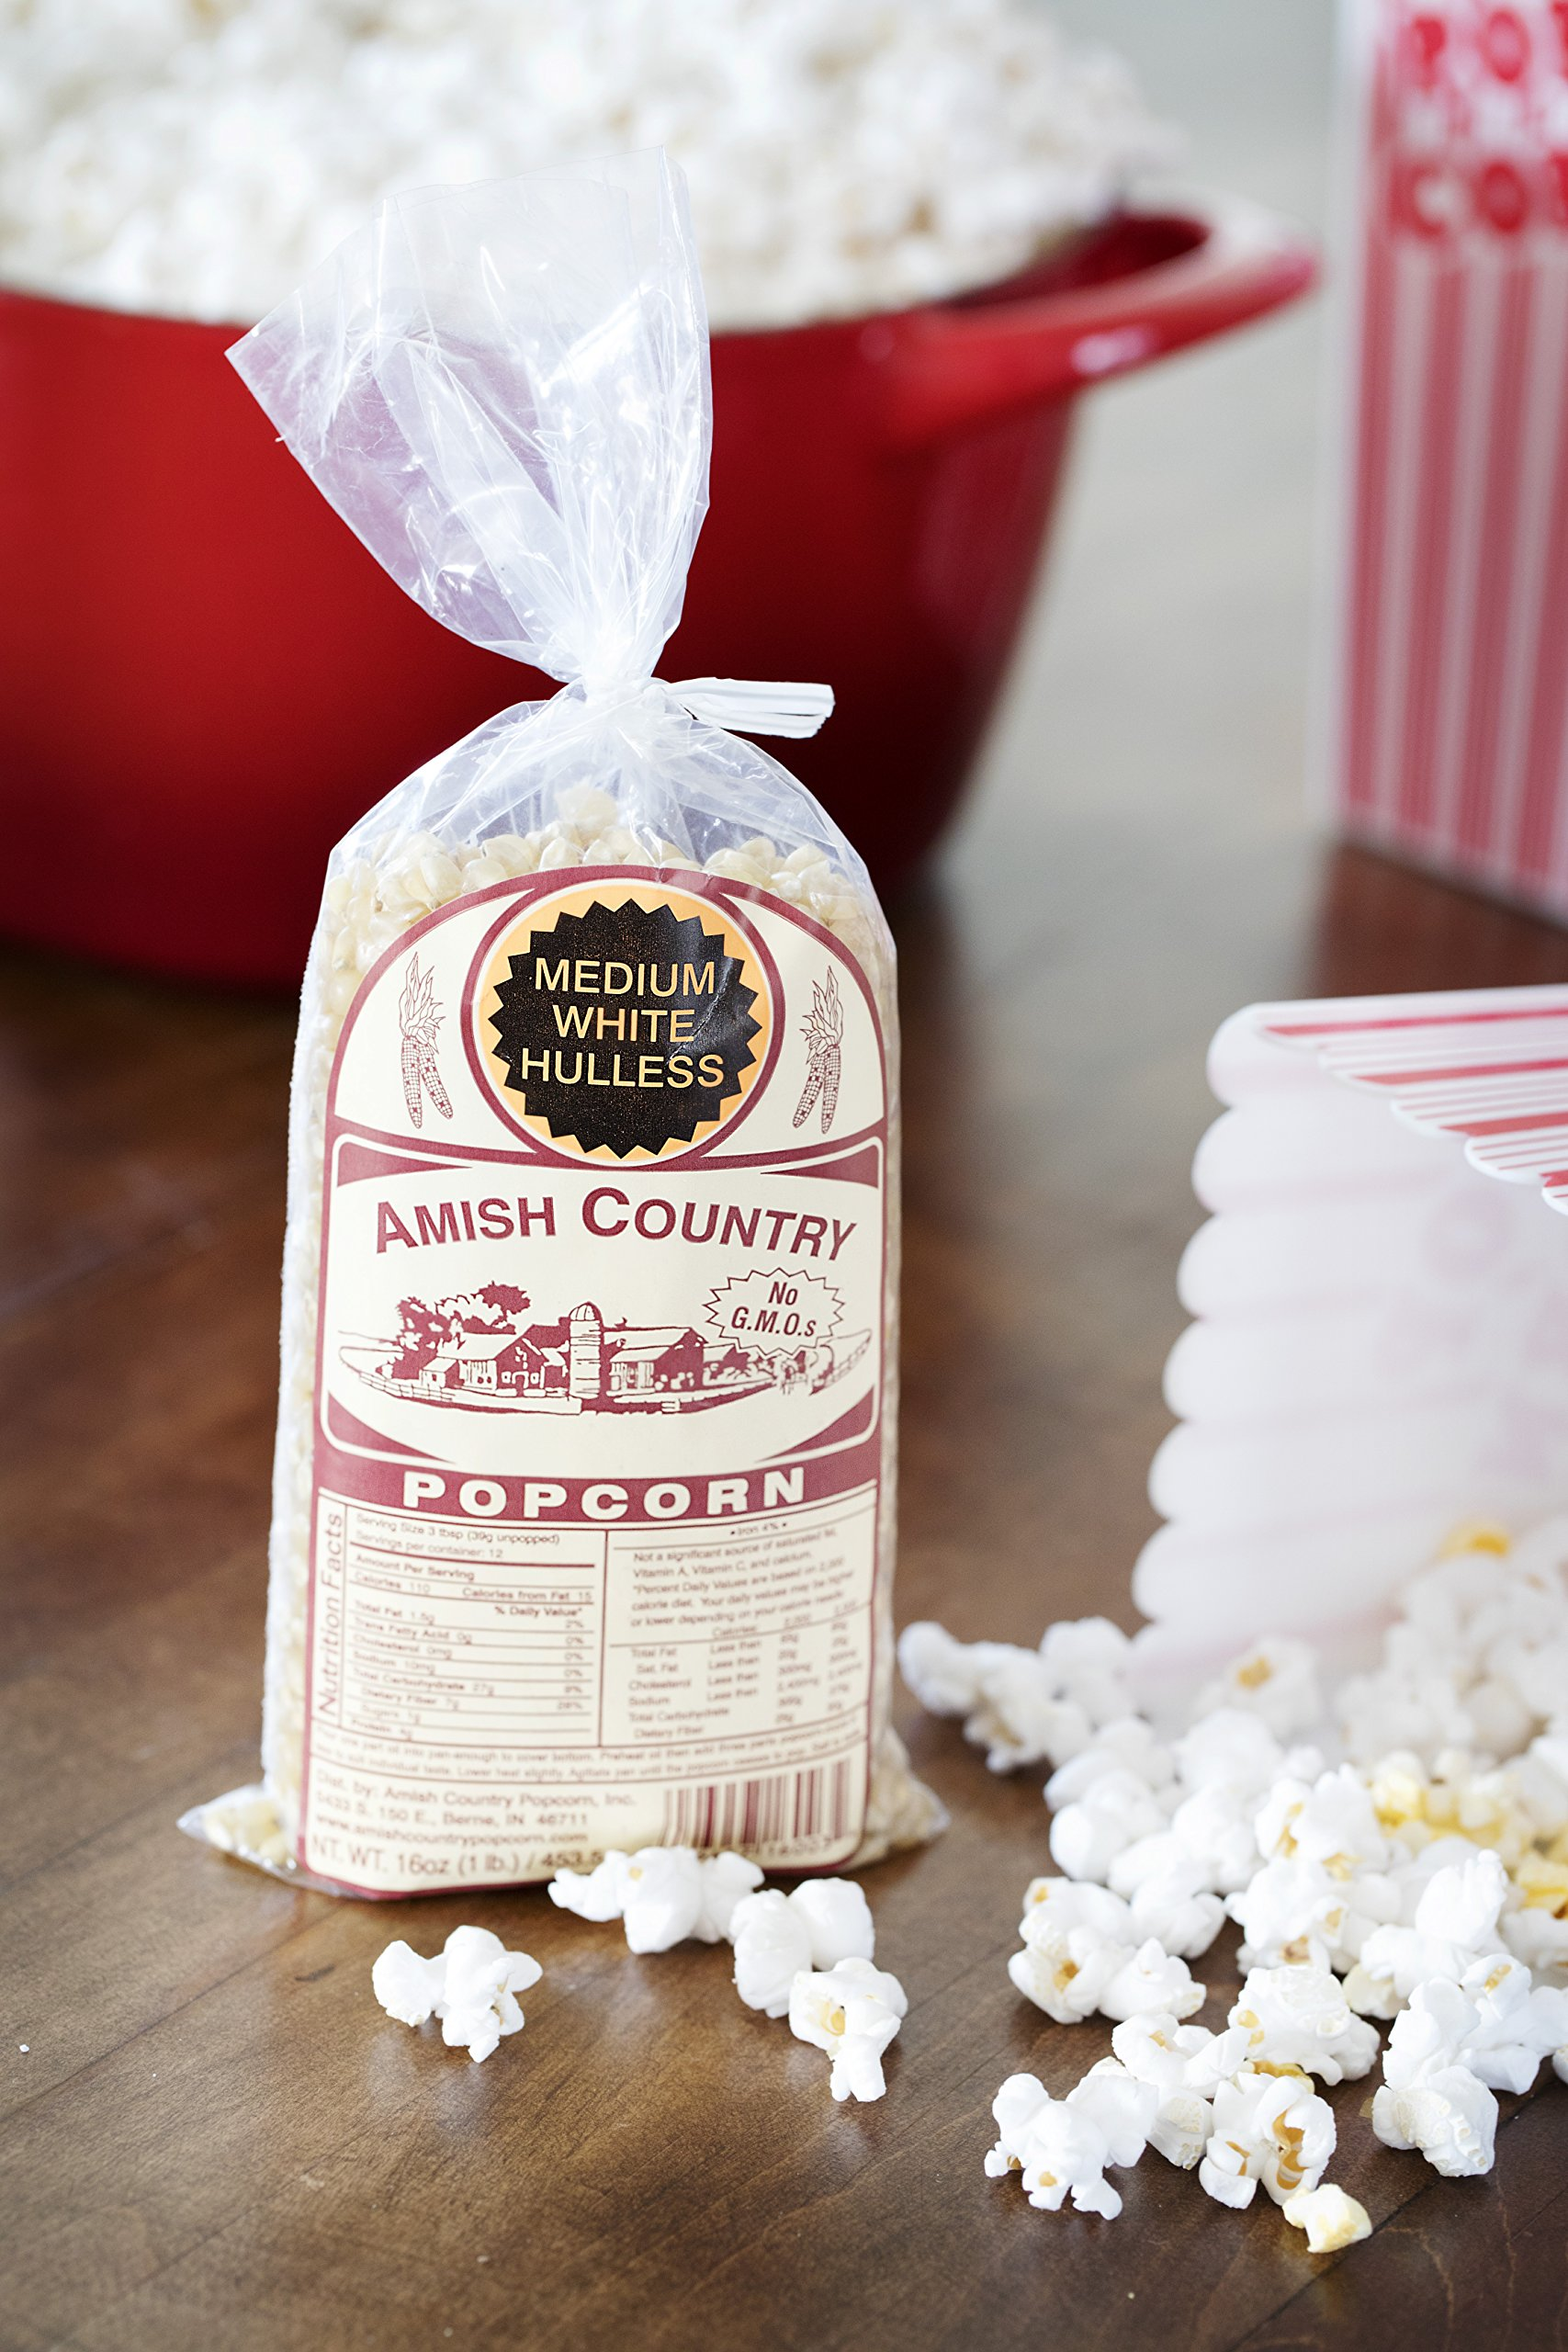 Amish Country Popcorn - Medium White Popcorn (1 Pound Bag) - Old Fashioned, Non GMO, Gluten Free, Microwaveable, Stovetop and Air Popper Friendly - Recipe Guide by Amish Country Popcorn (Image #5)